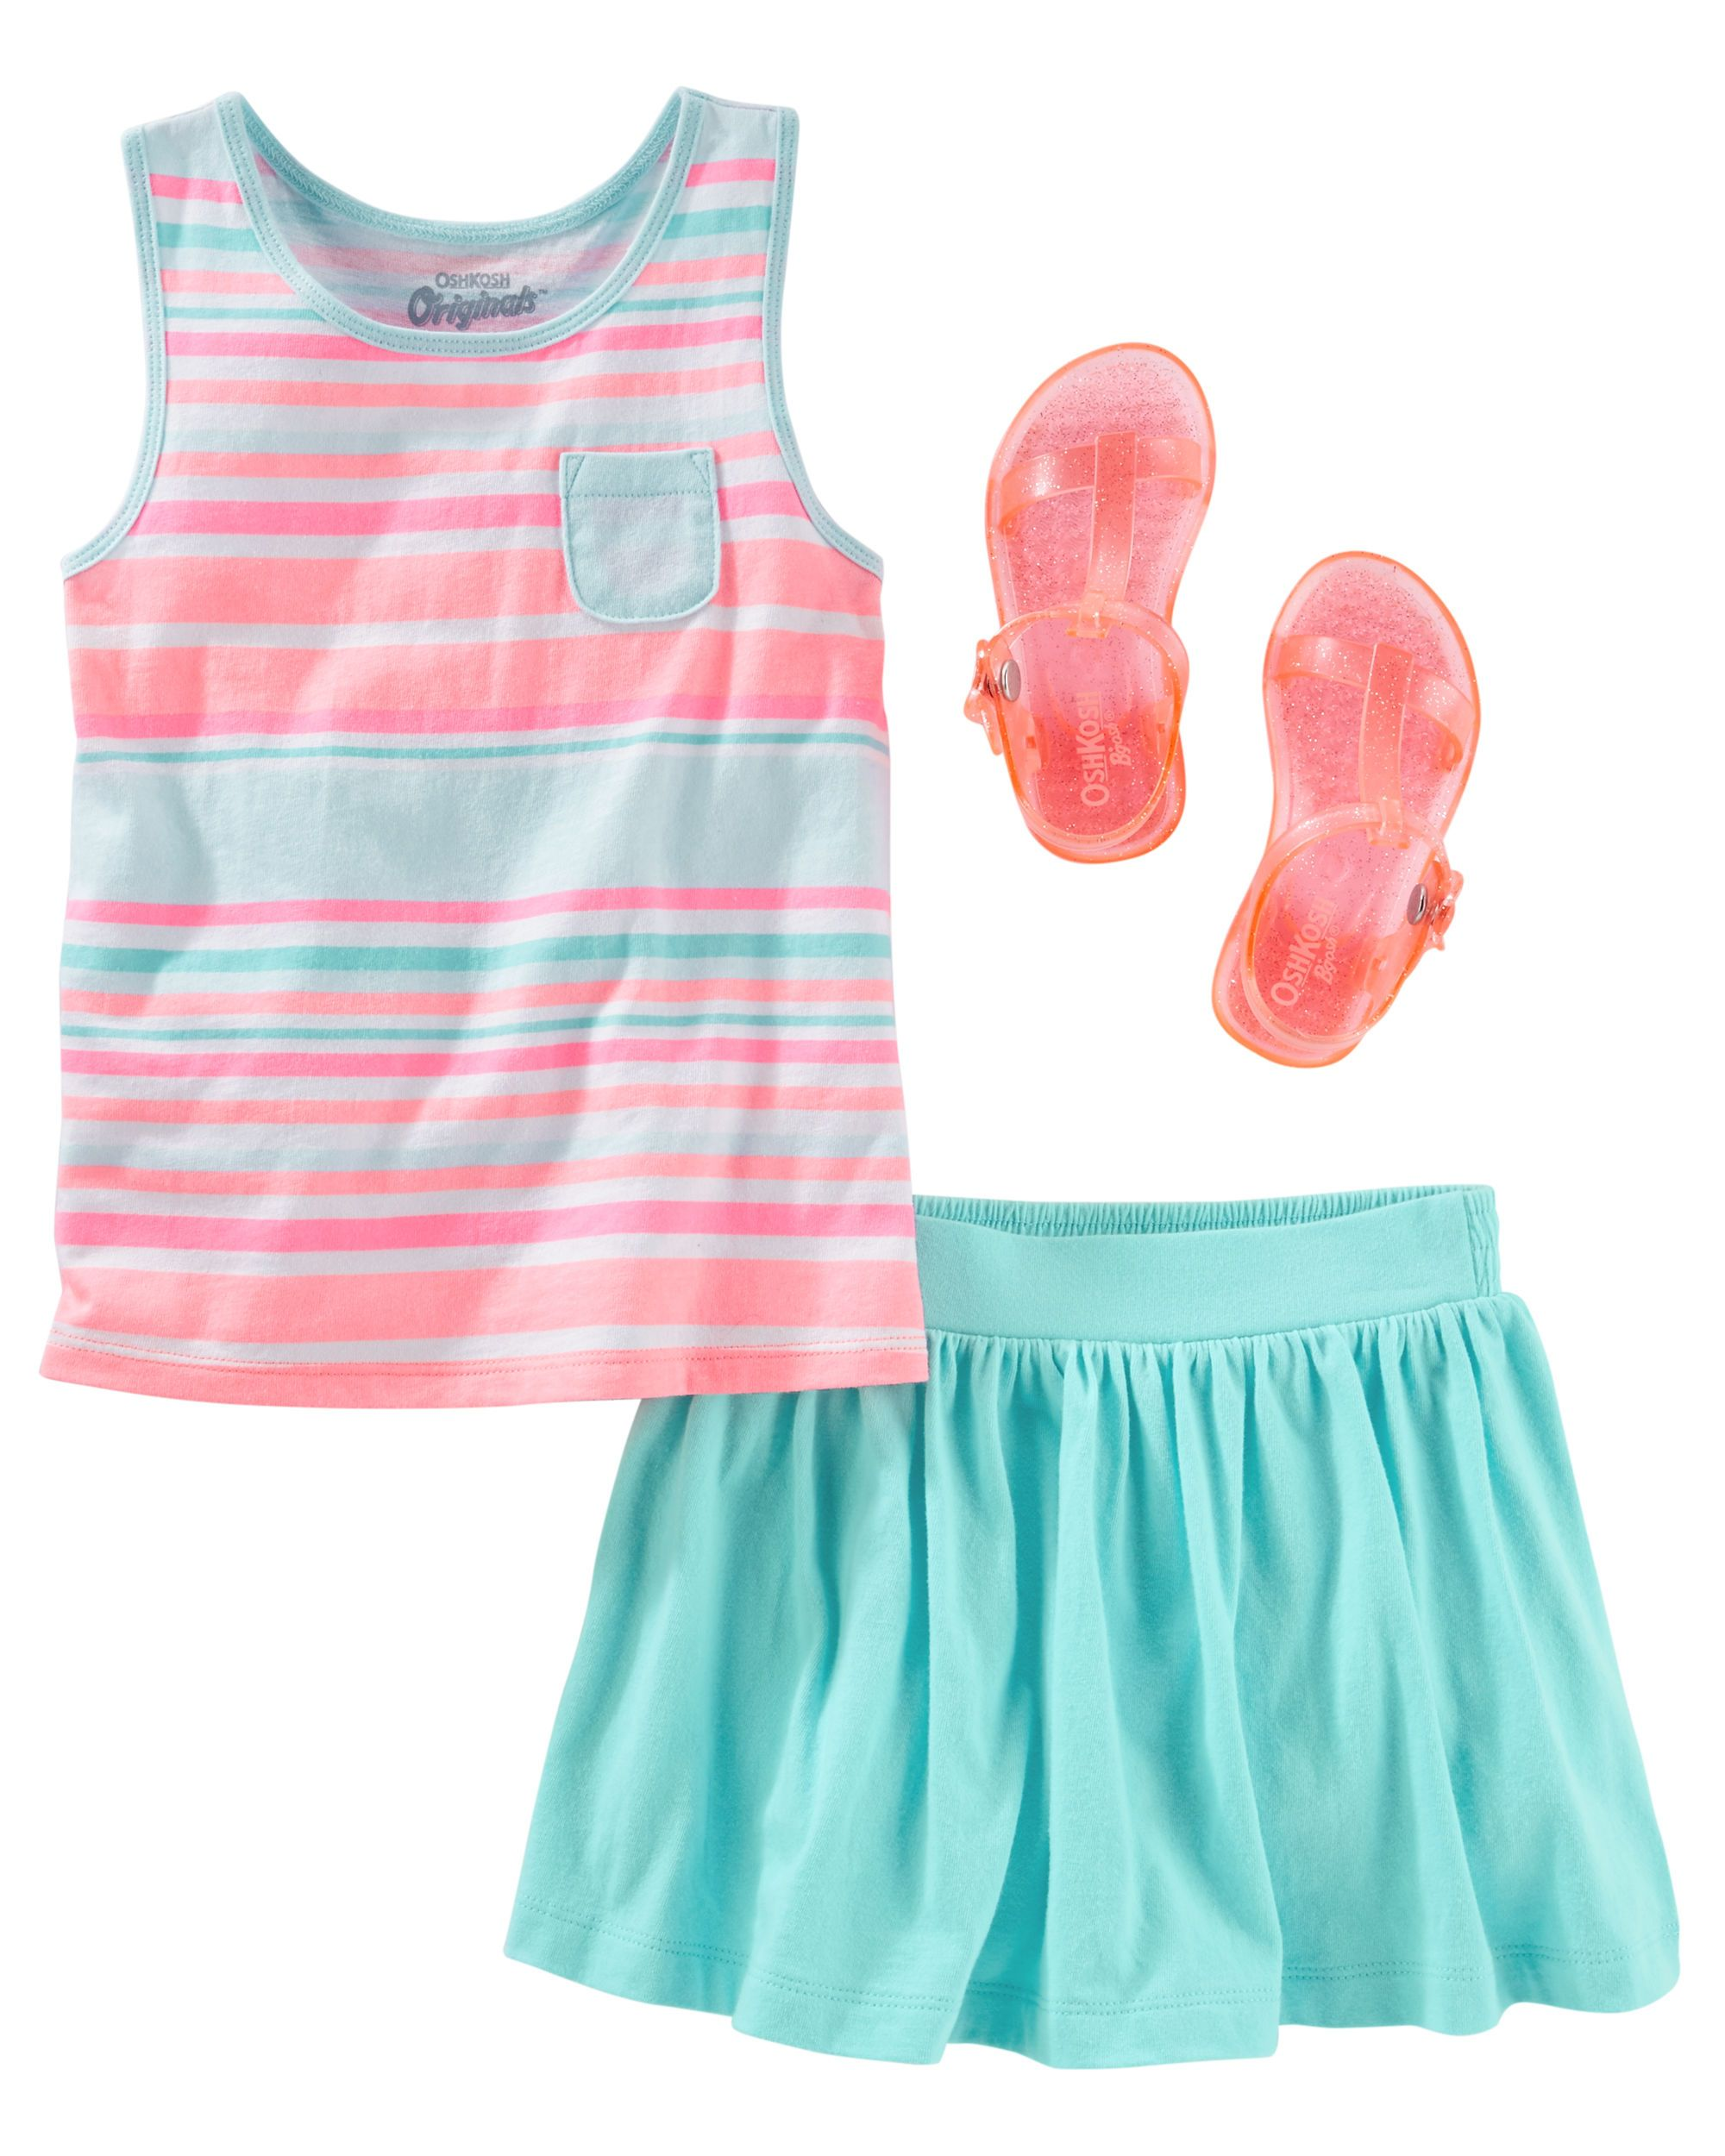 45ecb1552189 Nothing says summer like pretty pastels on pocket tanks and jelly sandals  (psst… they sparkle